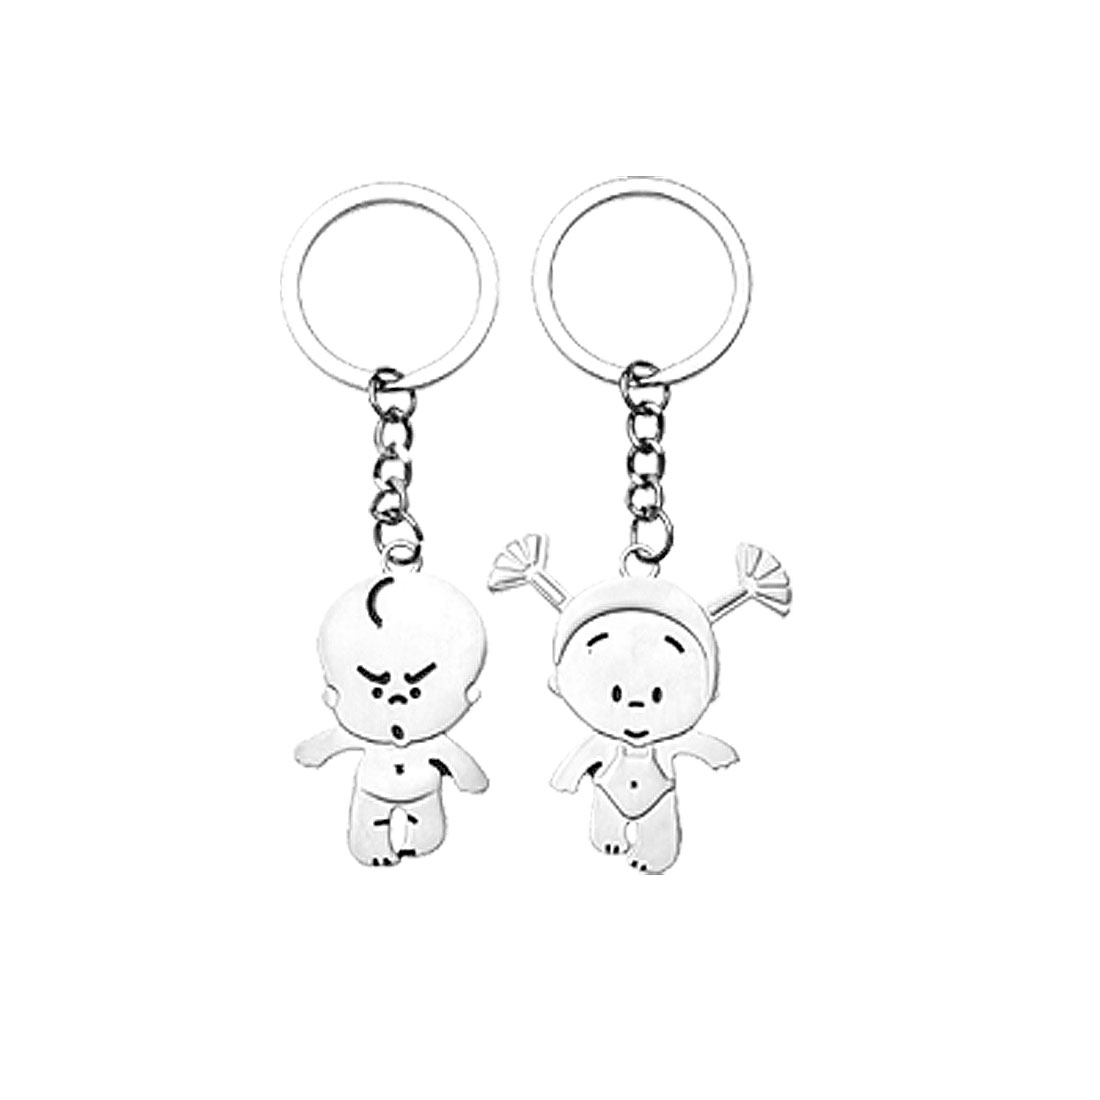 Lovely Girl and Boy Pendant Pair Key Chain Keychain Keyring for Lovers